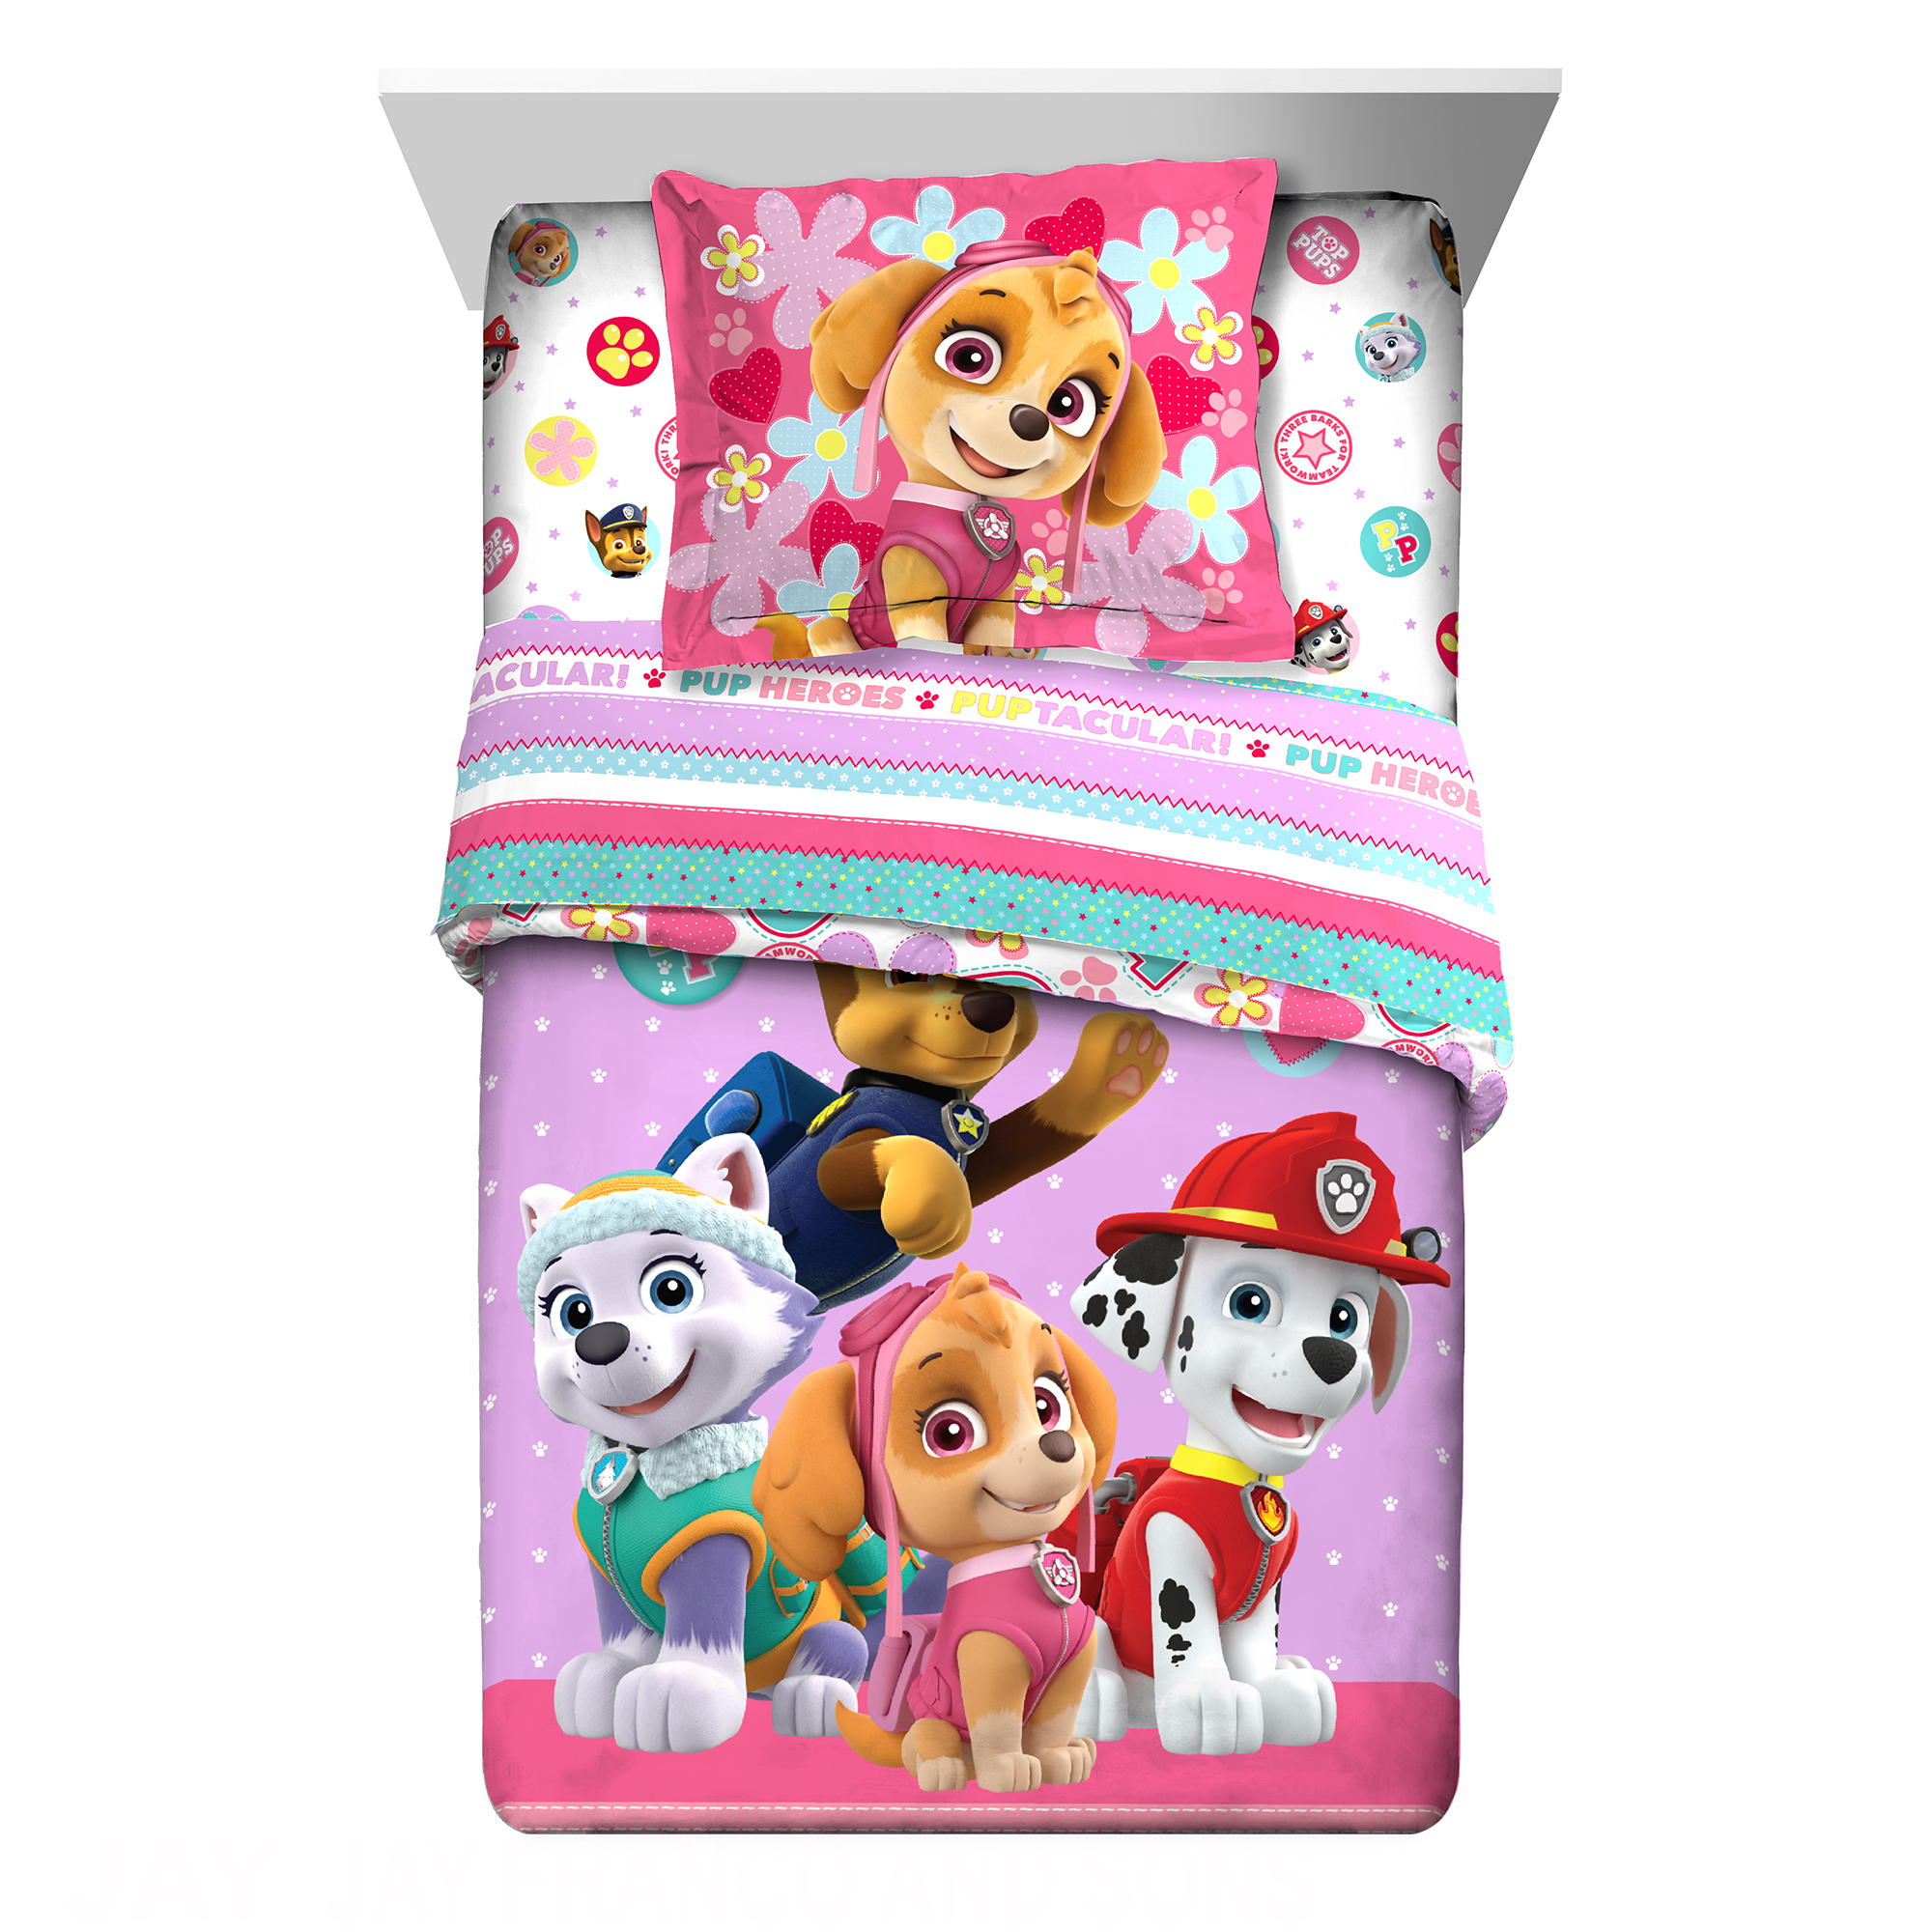 Paw Patrol Best Pup Pals Kids Bedding 2Pc Comforter with Sham, Twin/Full